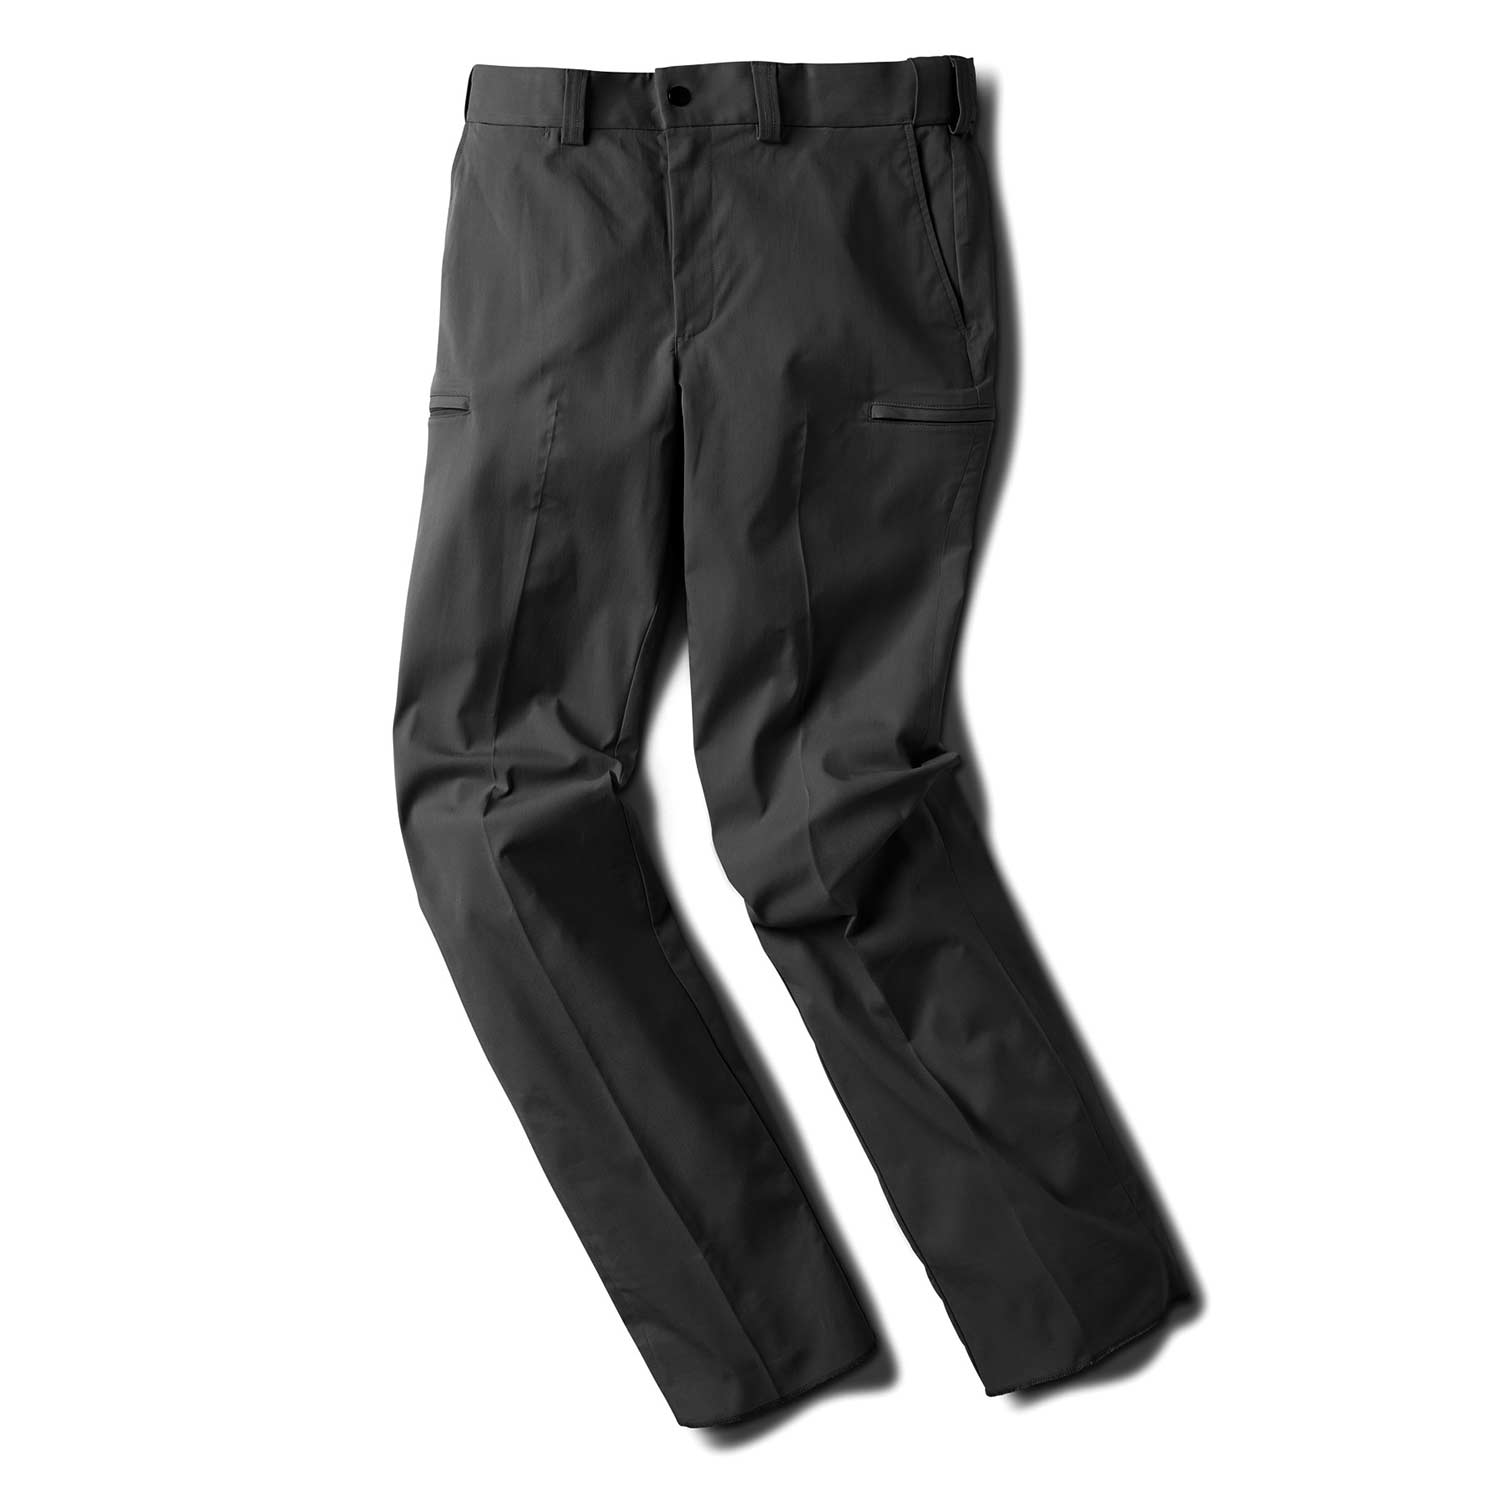 5.11 Tactical Class A Flex-Tac Poly/Wool Twill Cargo Pant